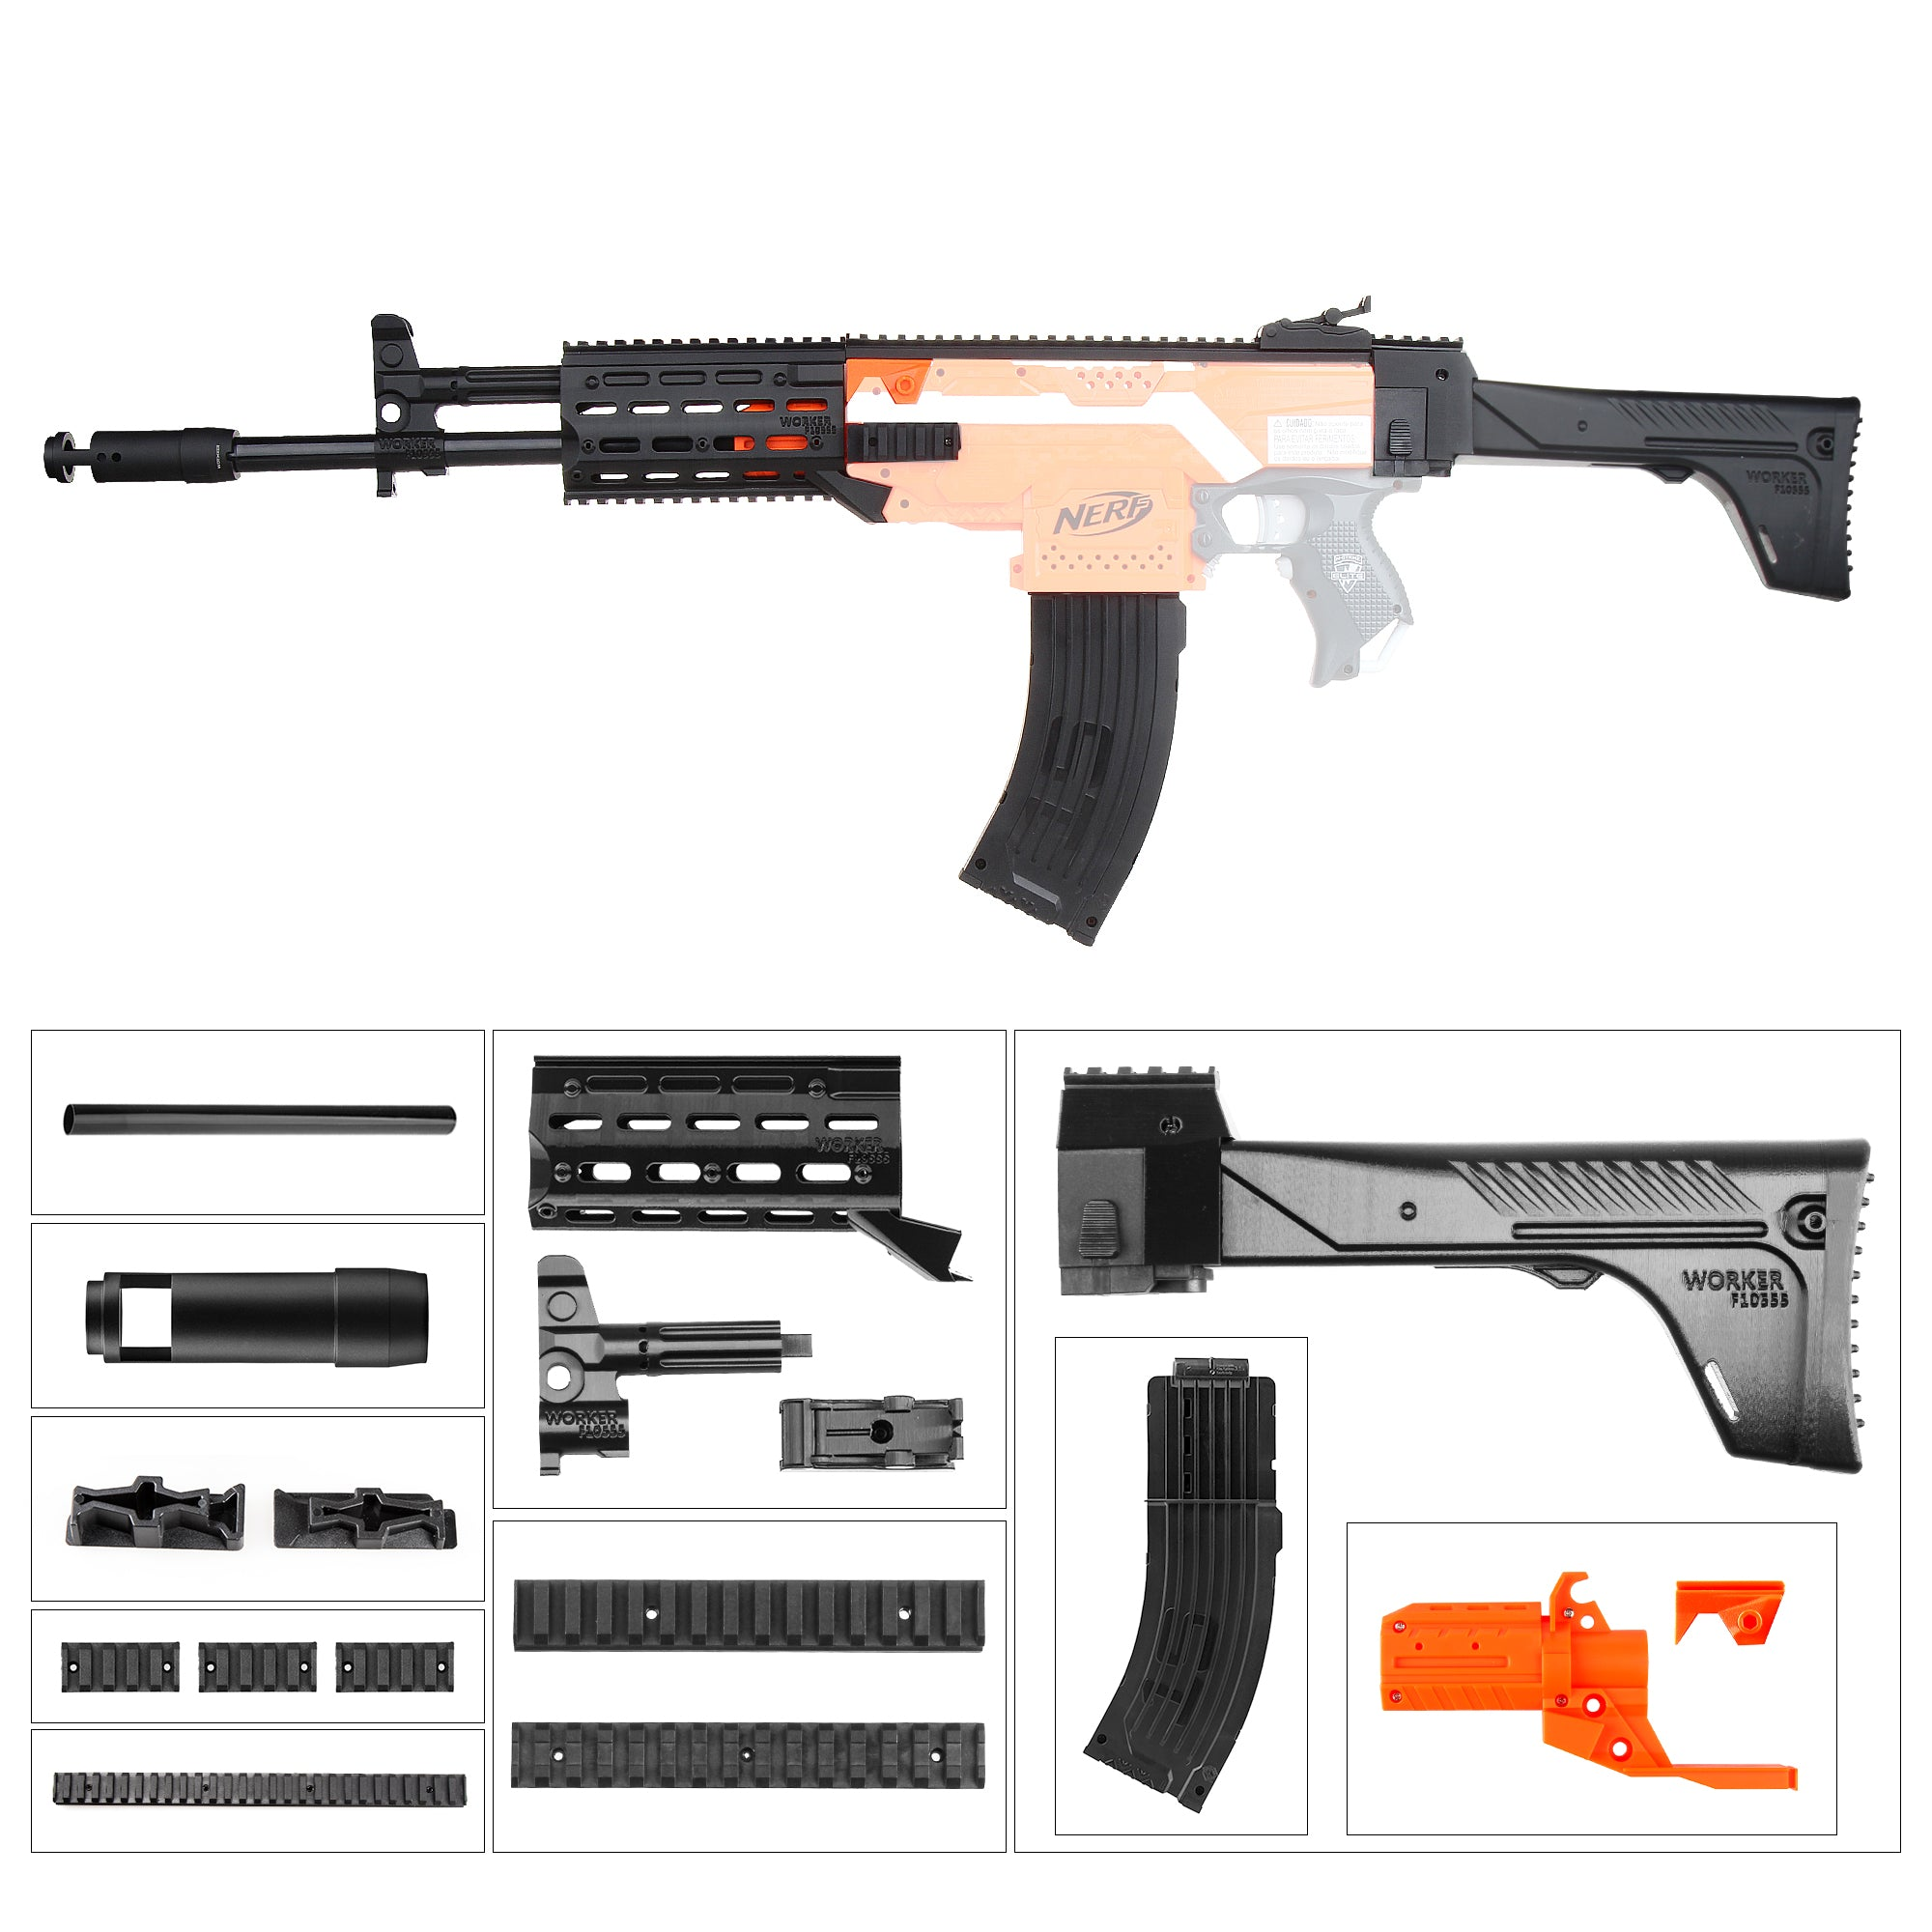 JGCWorker STF-W001-A AK-12 A Style Mod Kits Set With Orange Adaptor for Nerf N-Strike Elite Stryfe Blaster - Nerf Mod Kits -Worker Mod Kits